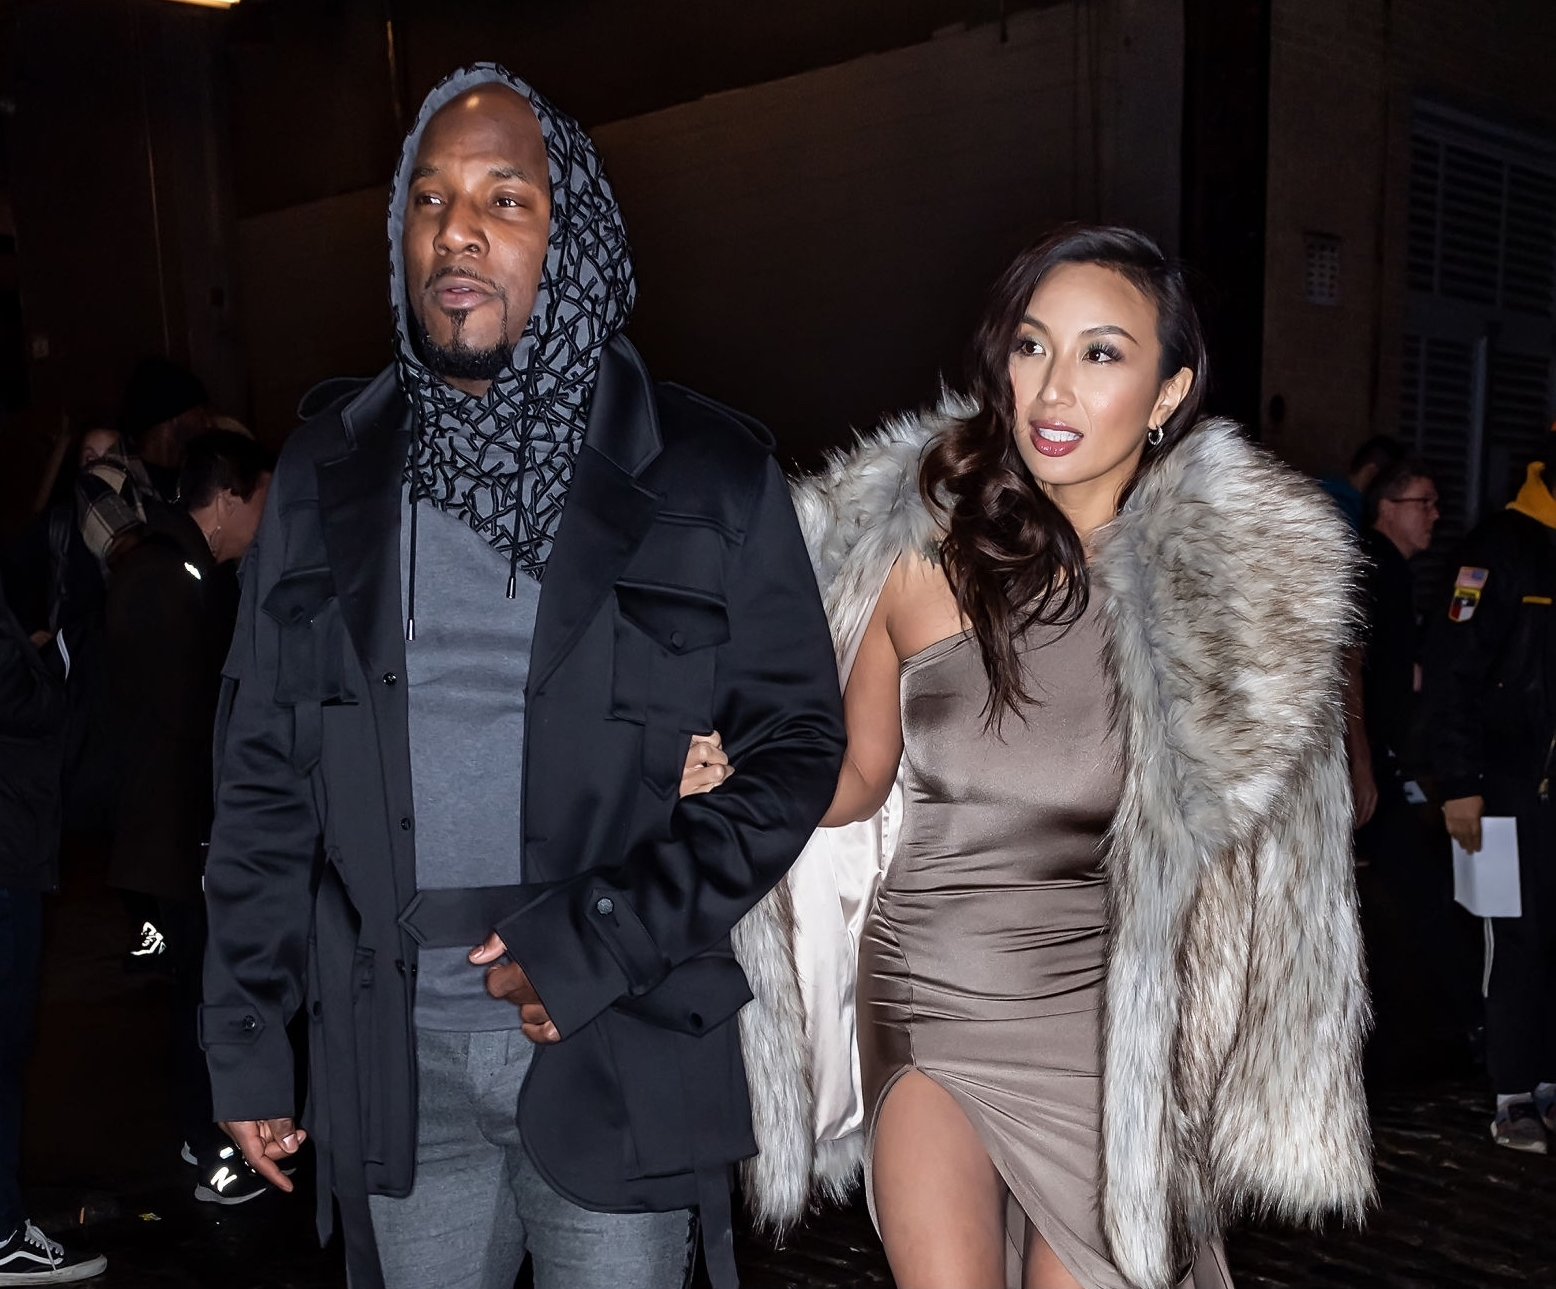 NEW YORK, NEW YORK - FEBRUARY 06: Rapper Jeezy and Jeannie Mai are seen leaving the Christian Siriano Fall Winter 2020 NYFW at Spring Studios on February 06, 2020 in New York City. (Photo by Gilbert Carrasquillo/GC Images)